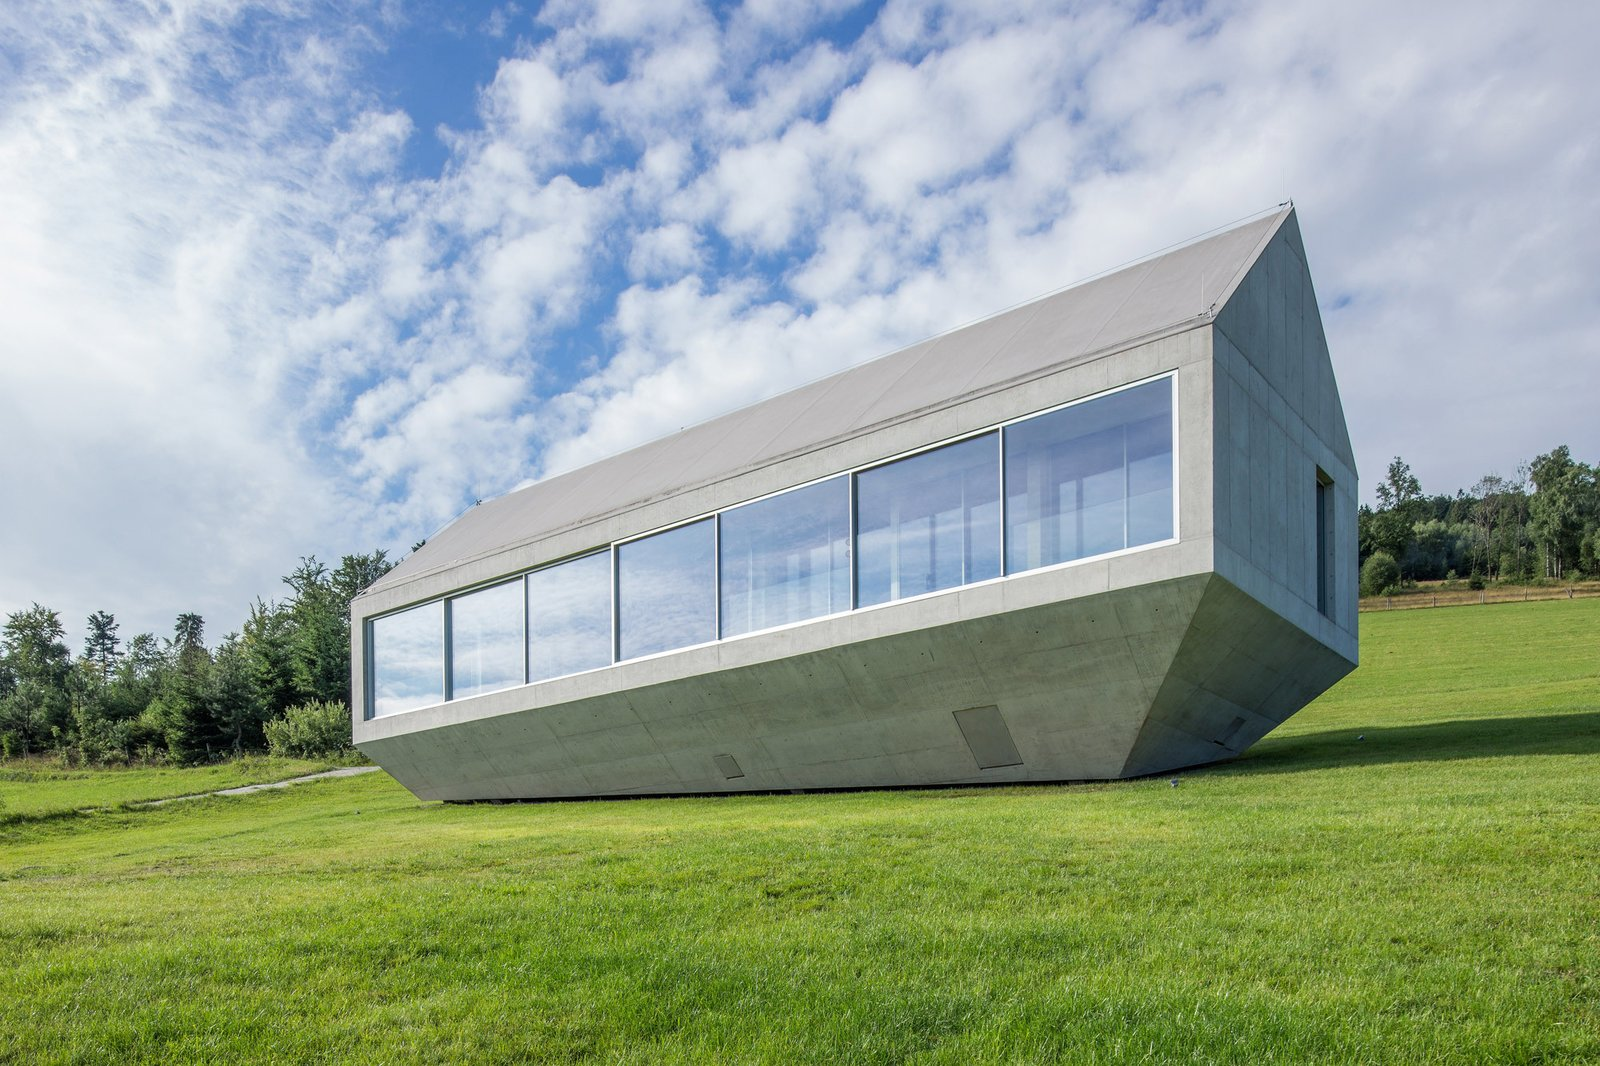 Photo 2 of 8 in A Striking Modern House Built In A Pastoral Landscape